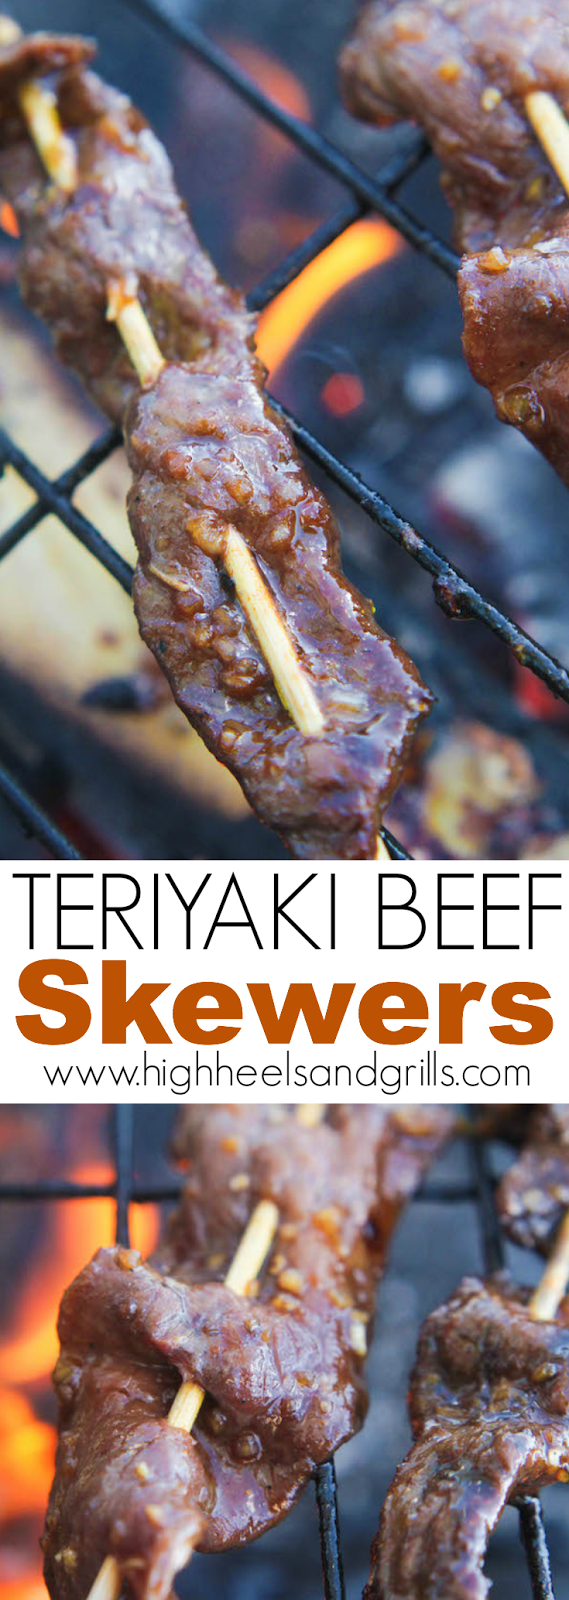 Teriyaki Beef Skewers #grillingrecipes